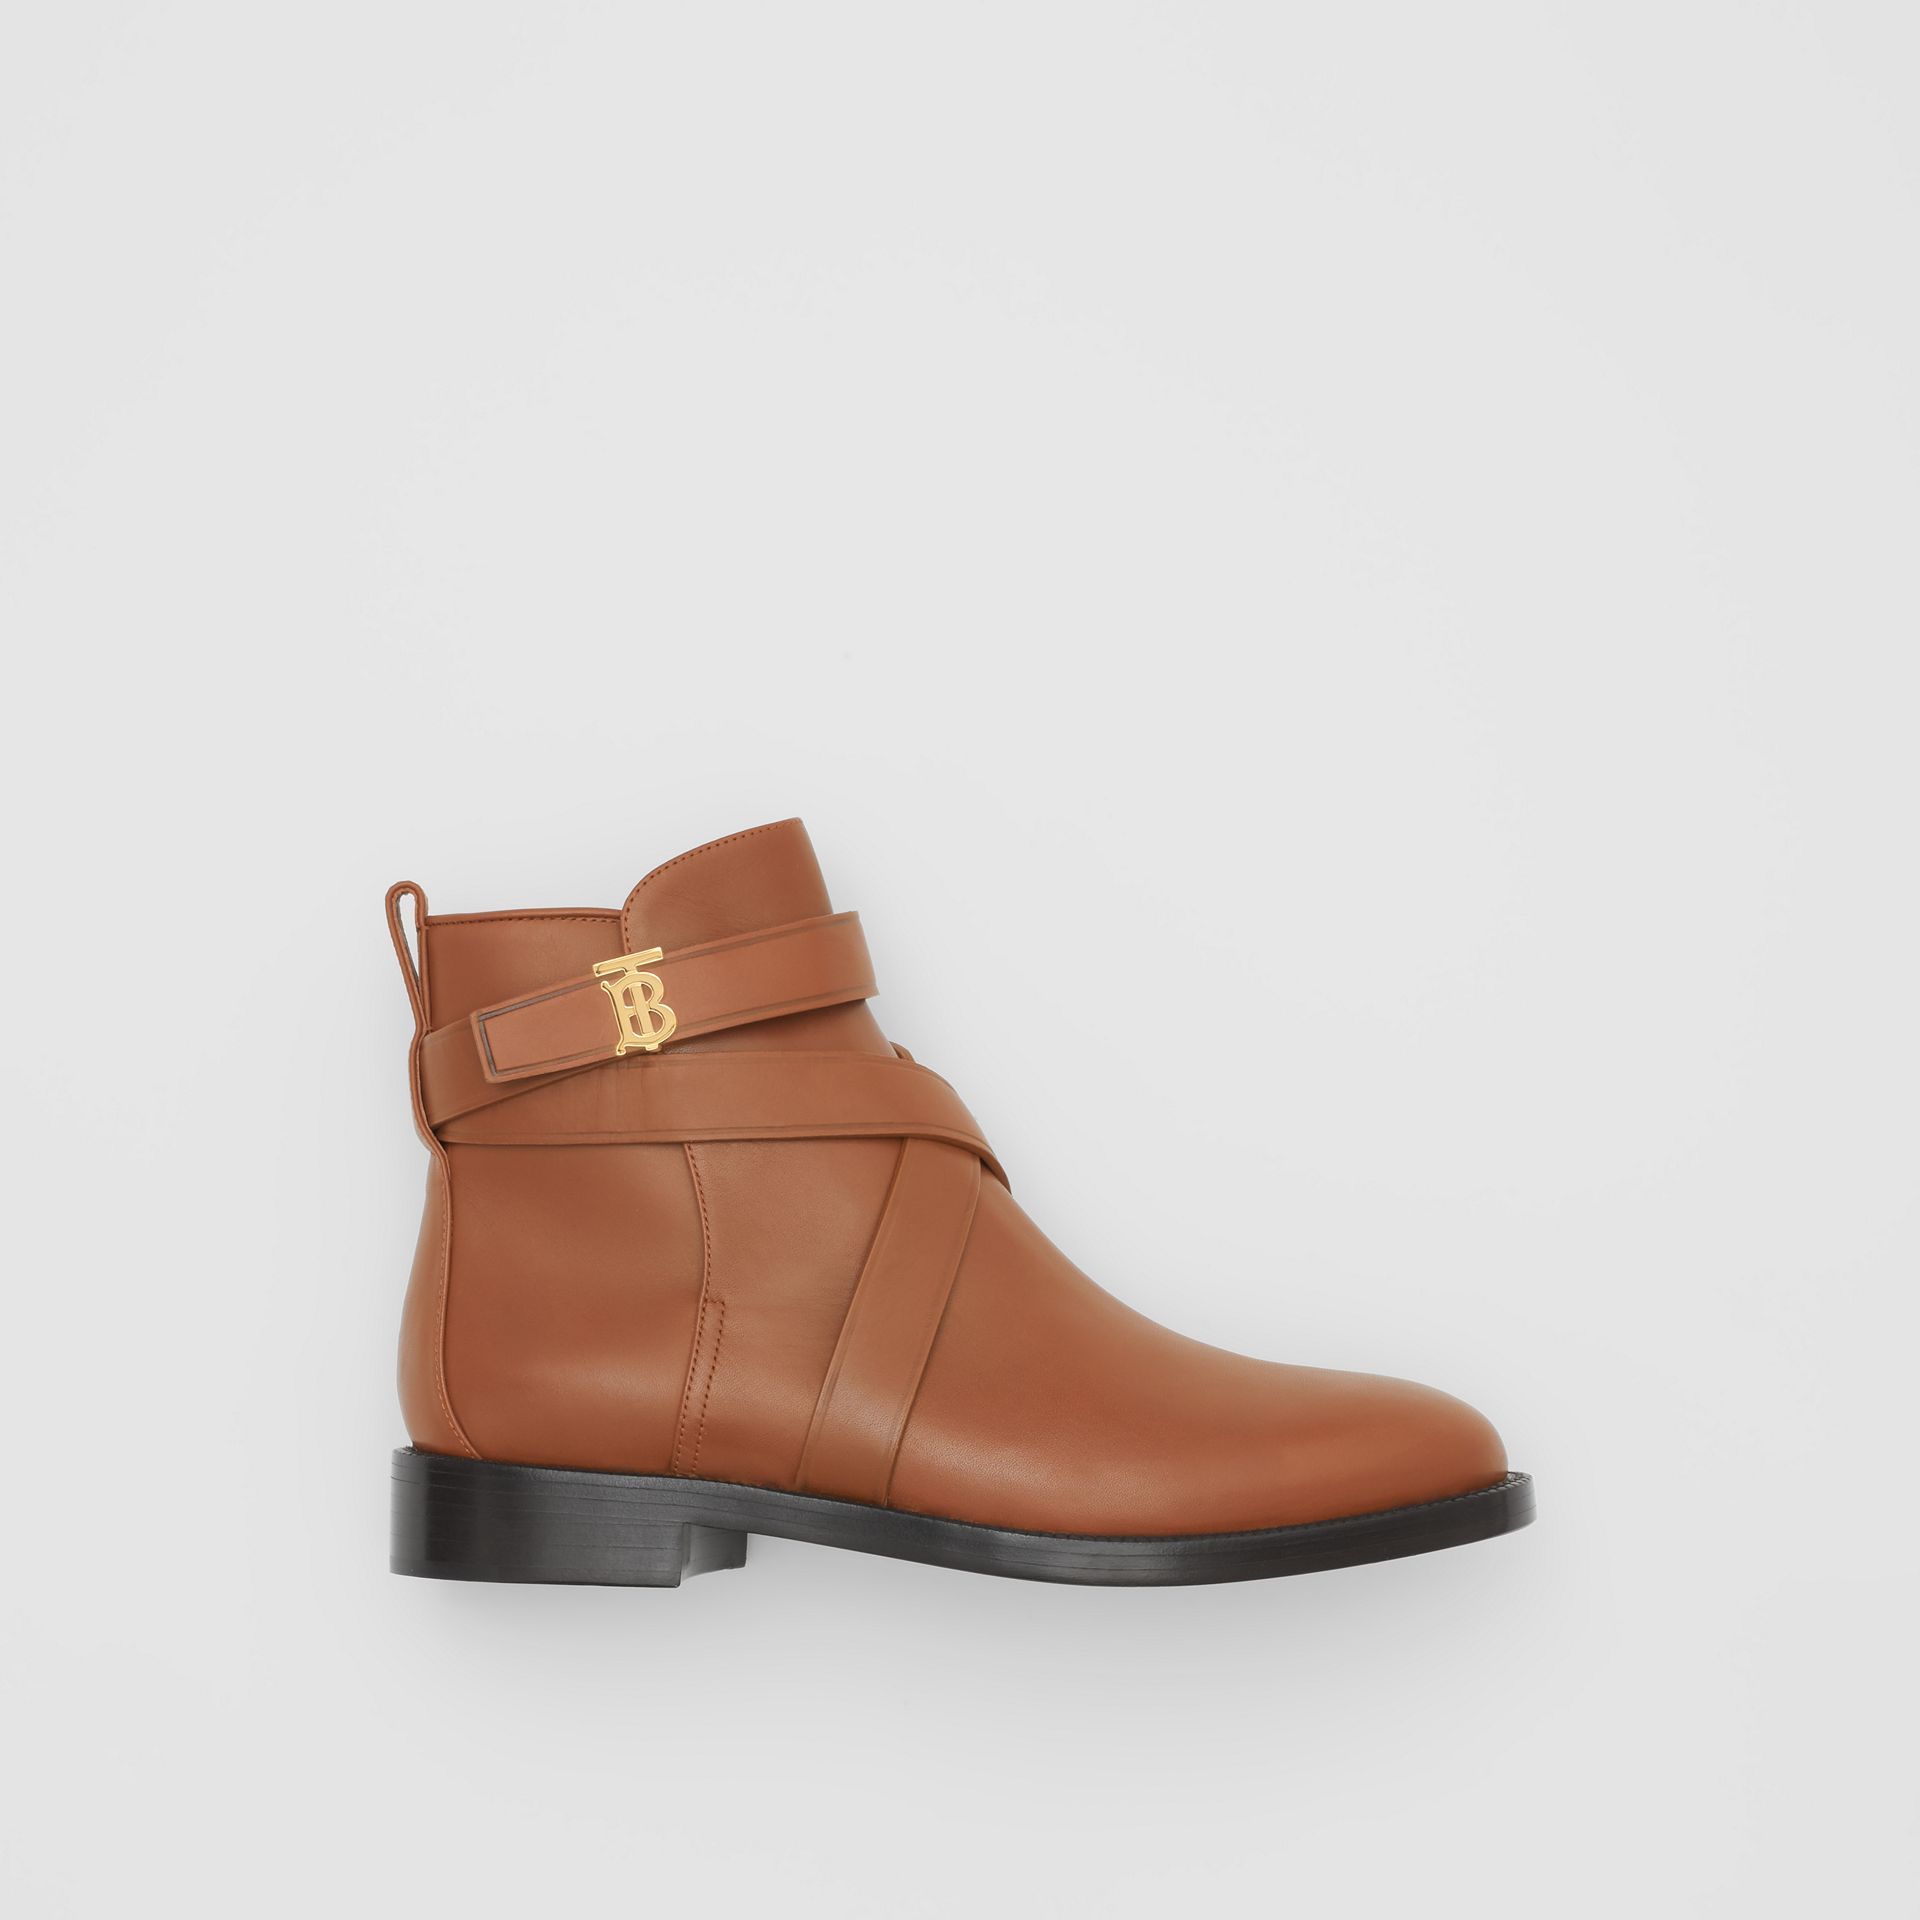 Monogram Motif Leather Ankle Boots in Tan - Women | Burberry United Kingdom - gallery image 0